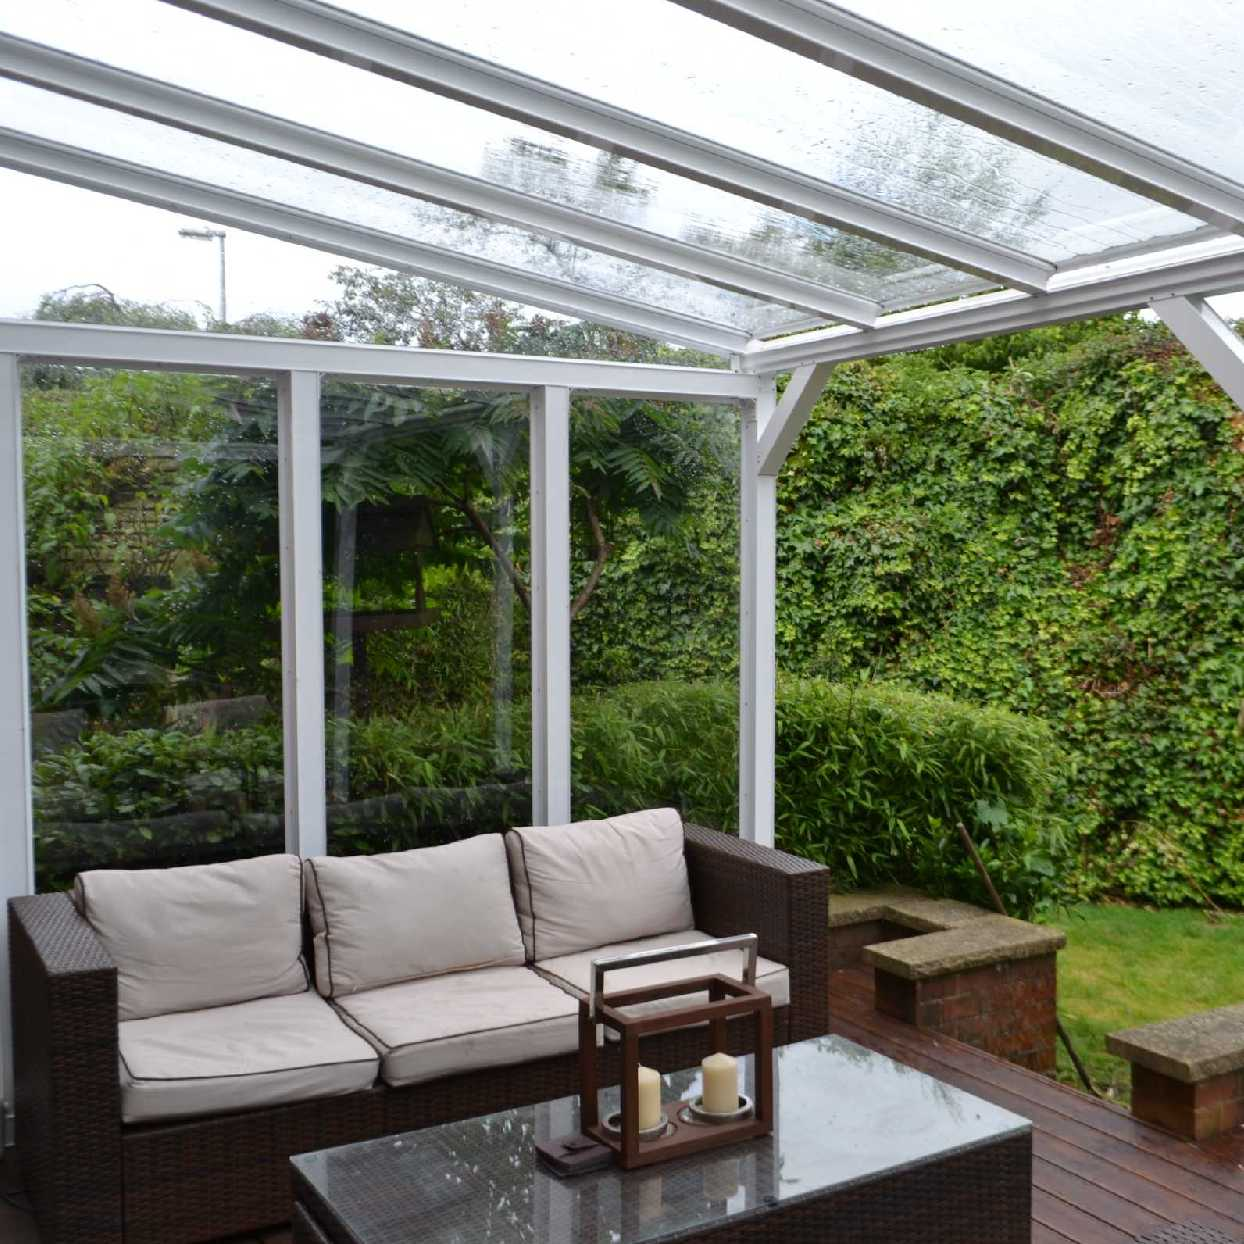 Omega Smart White Lean-To Canopy with 6mm Glass Clear Plate Polycarbonate Glazing - 6.3m (W) x 2.5m (P), (4) Supporting Posts